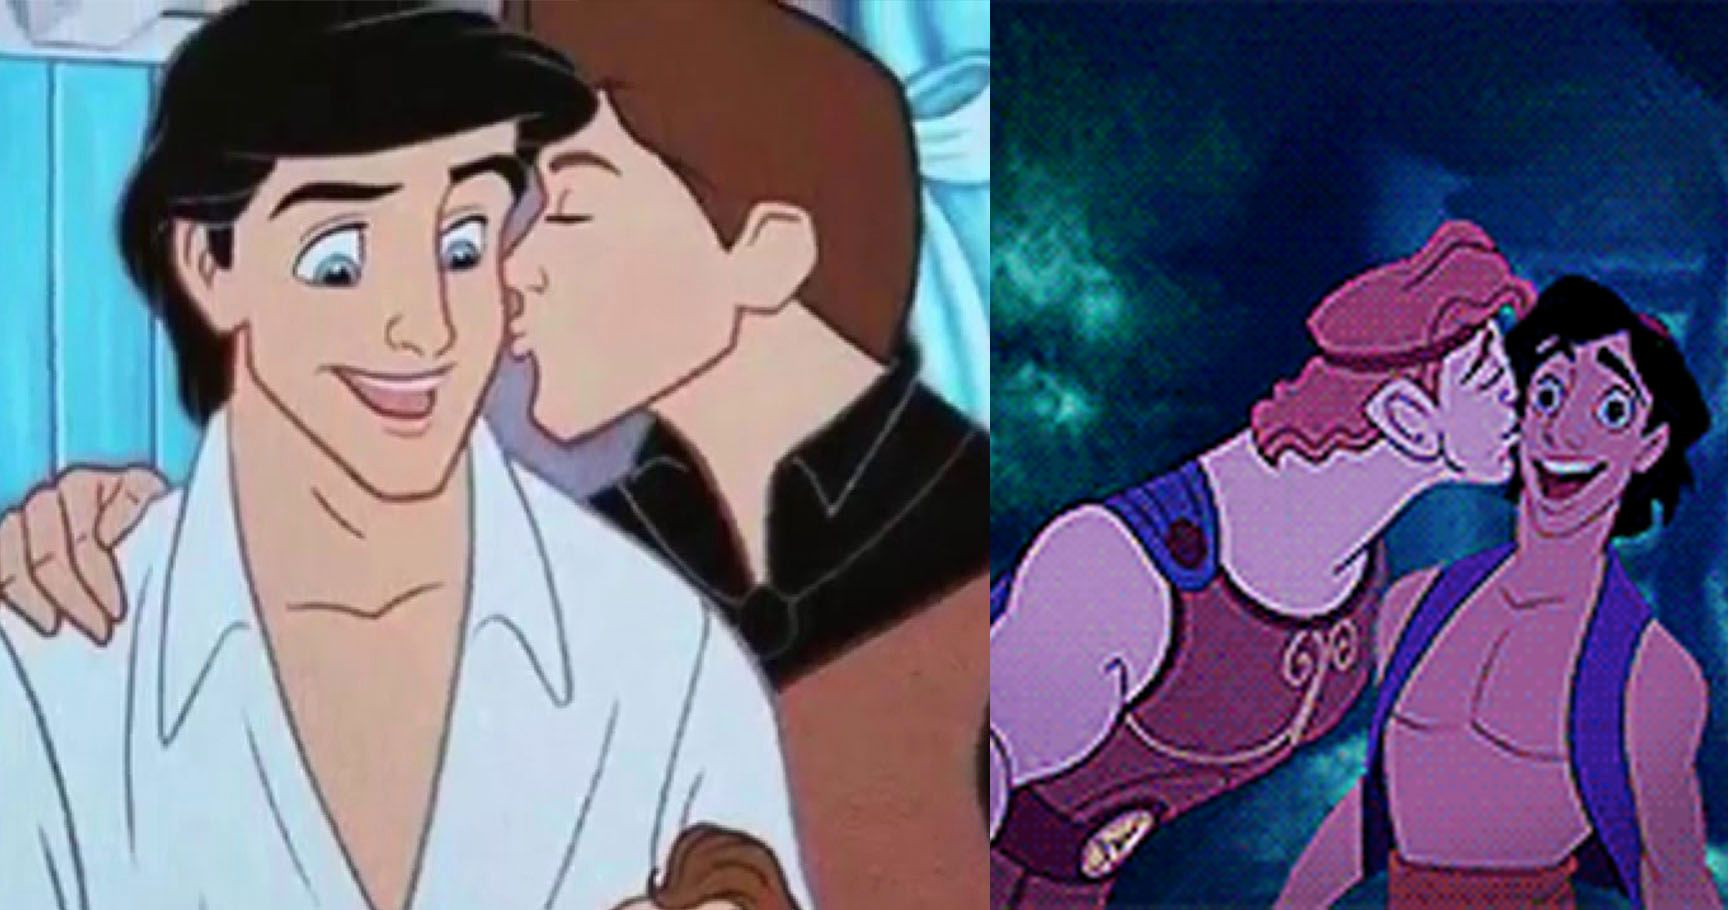 What If These Disney Characters Were Gay? 15 Disney Characters Reimagined